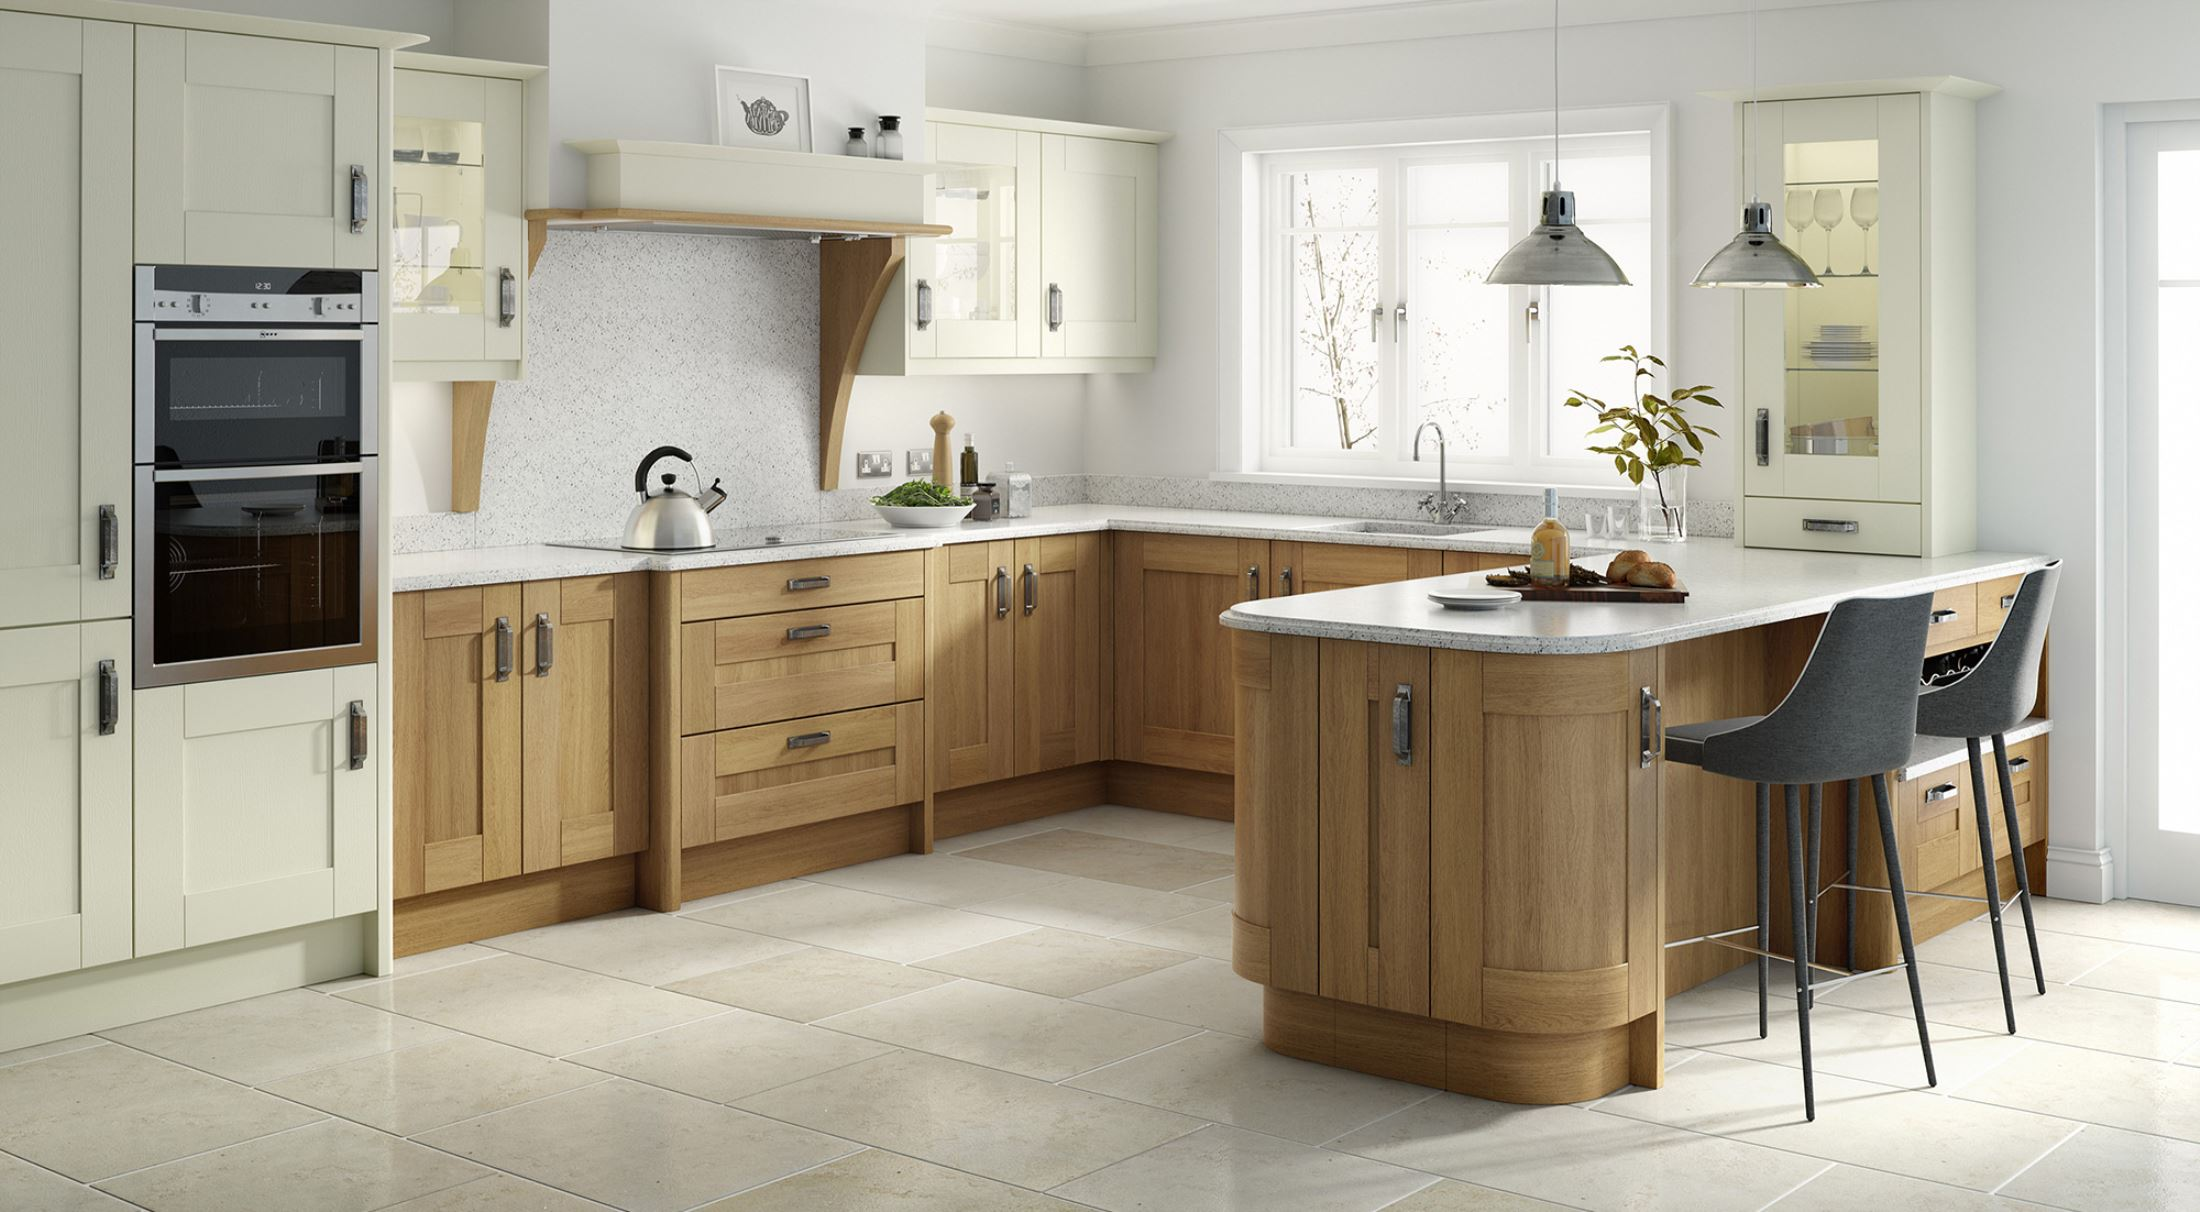 harewood horsforth grange roundel example kitchen